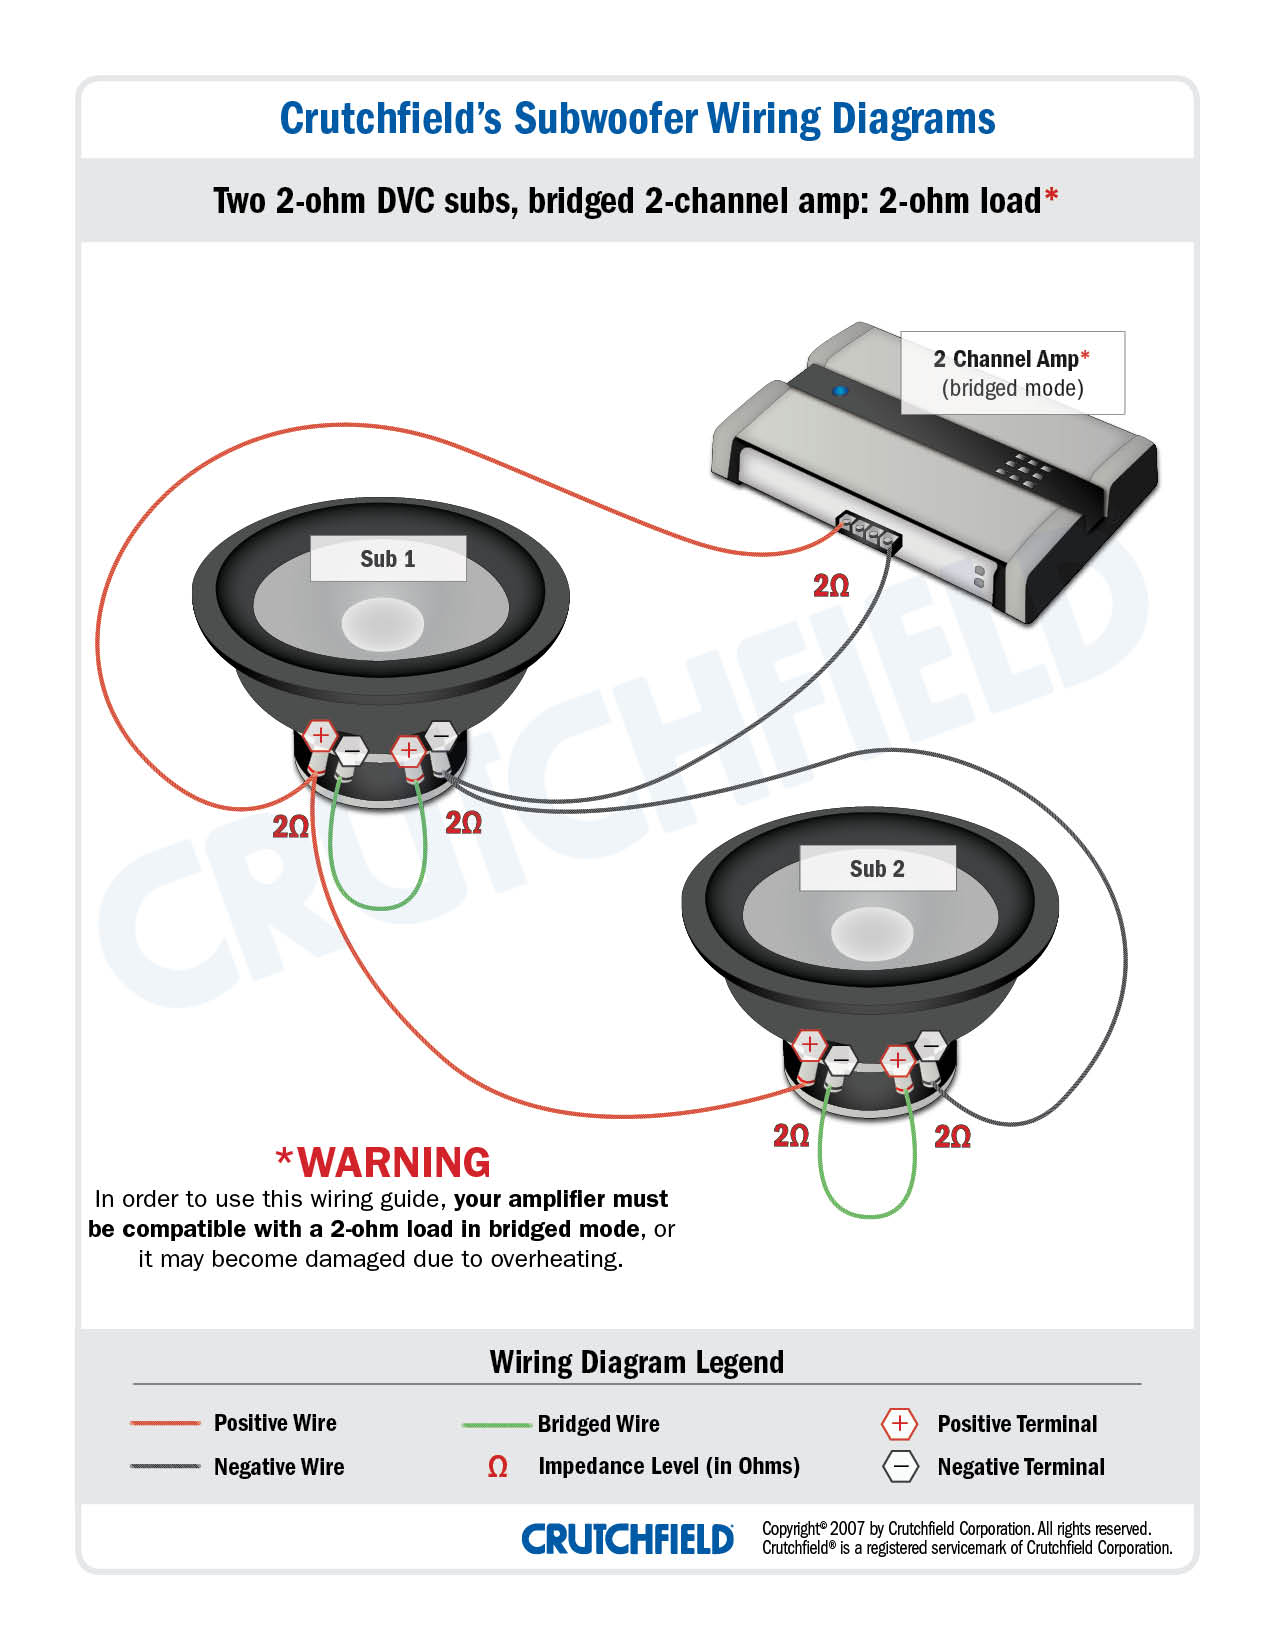 subwoofer wiring diagrams rh crutchfield com Single Subwoofer Wiring 1 Ohm Subwoofer Wiring